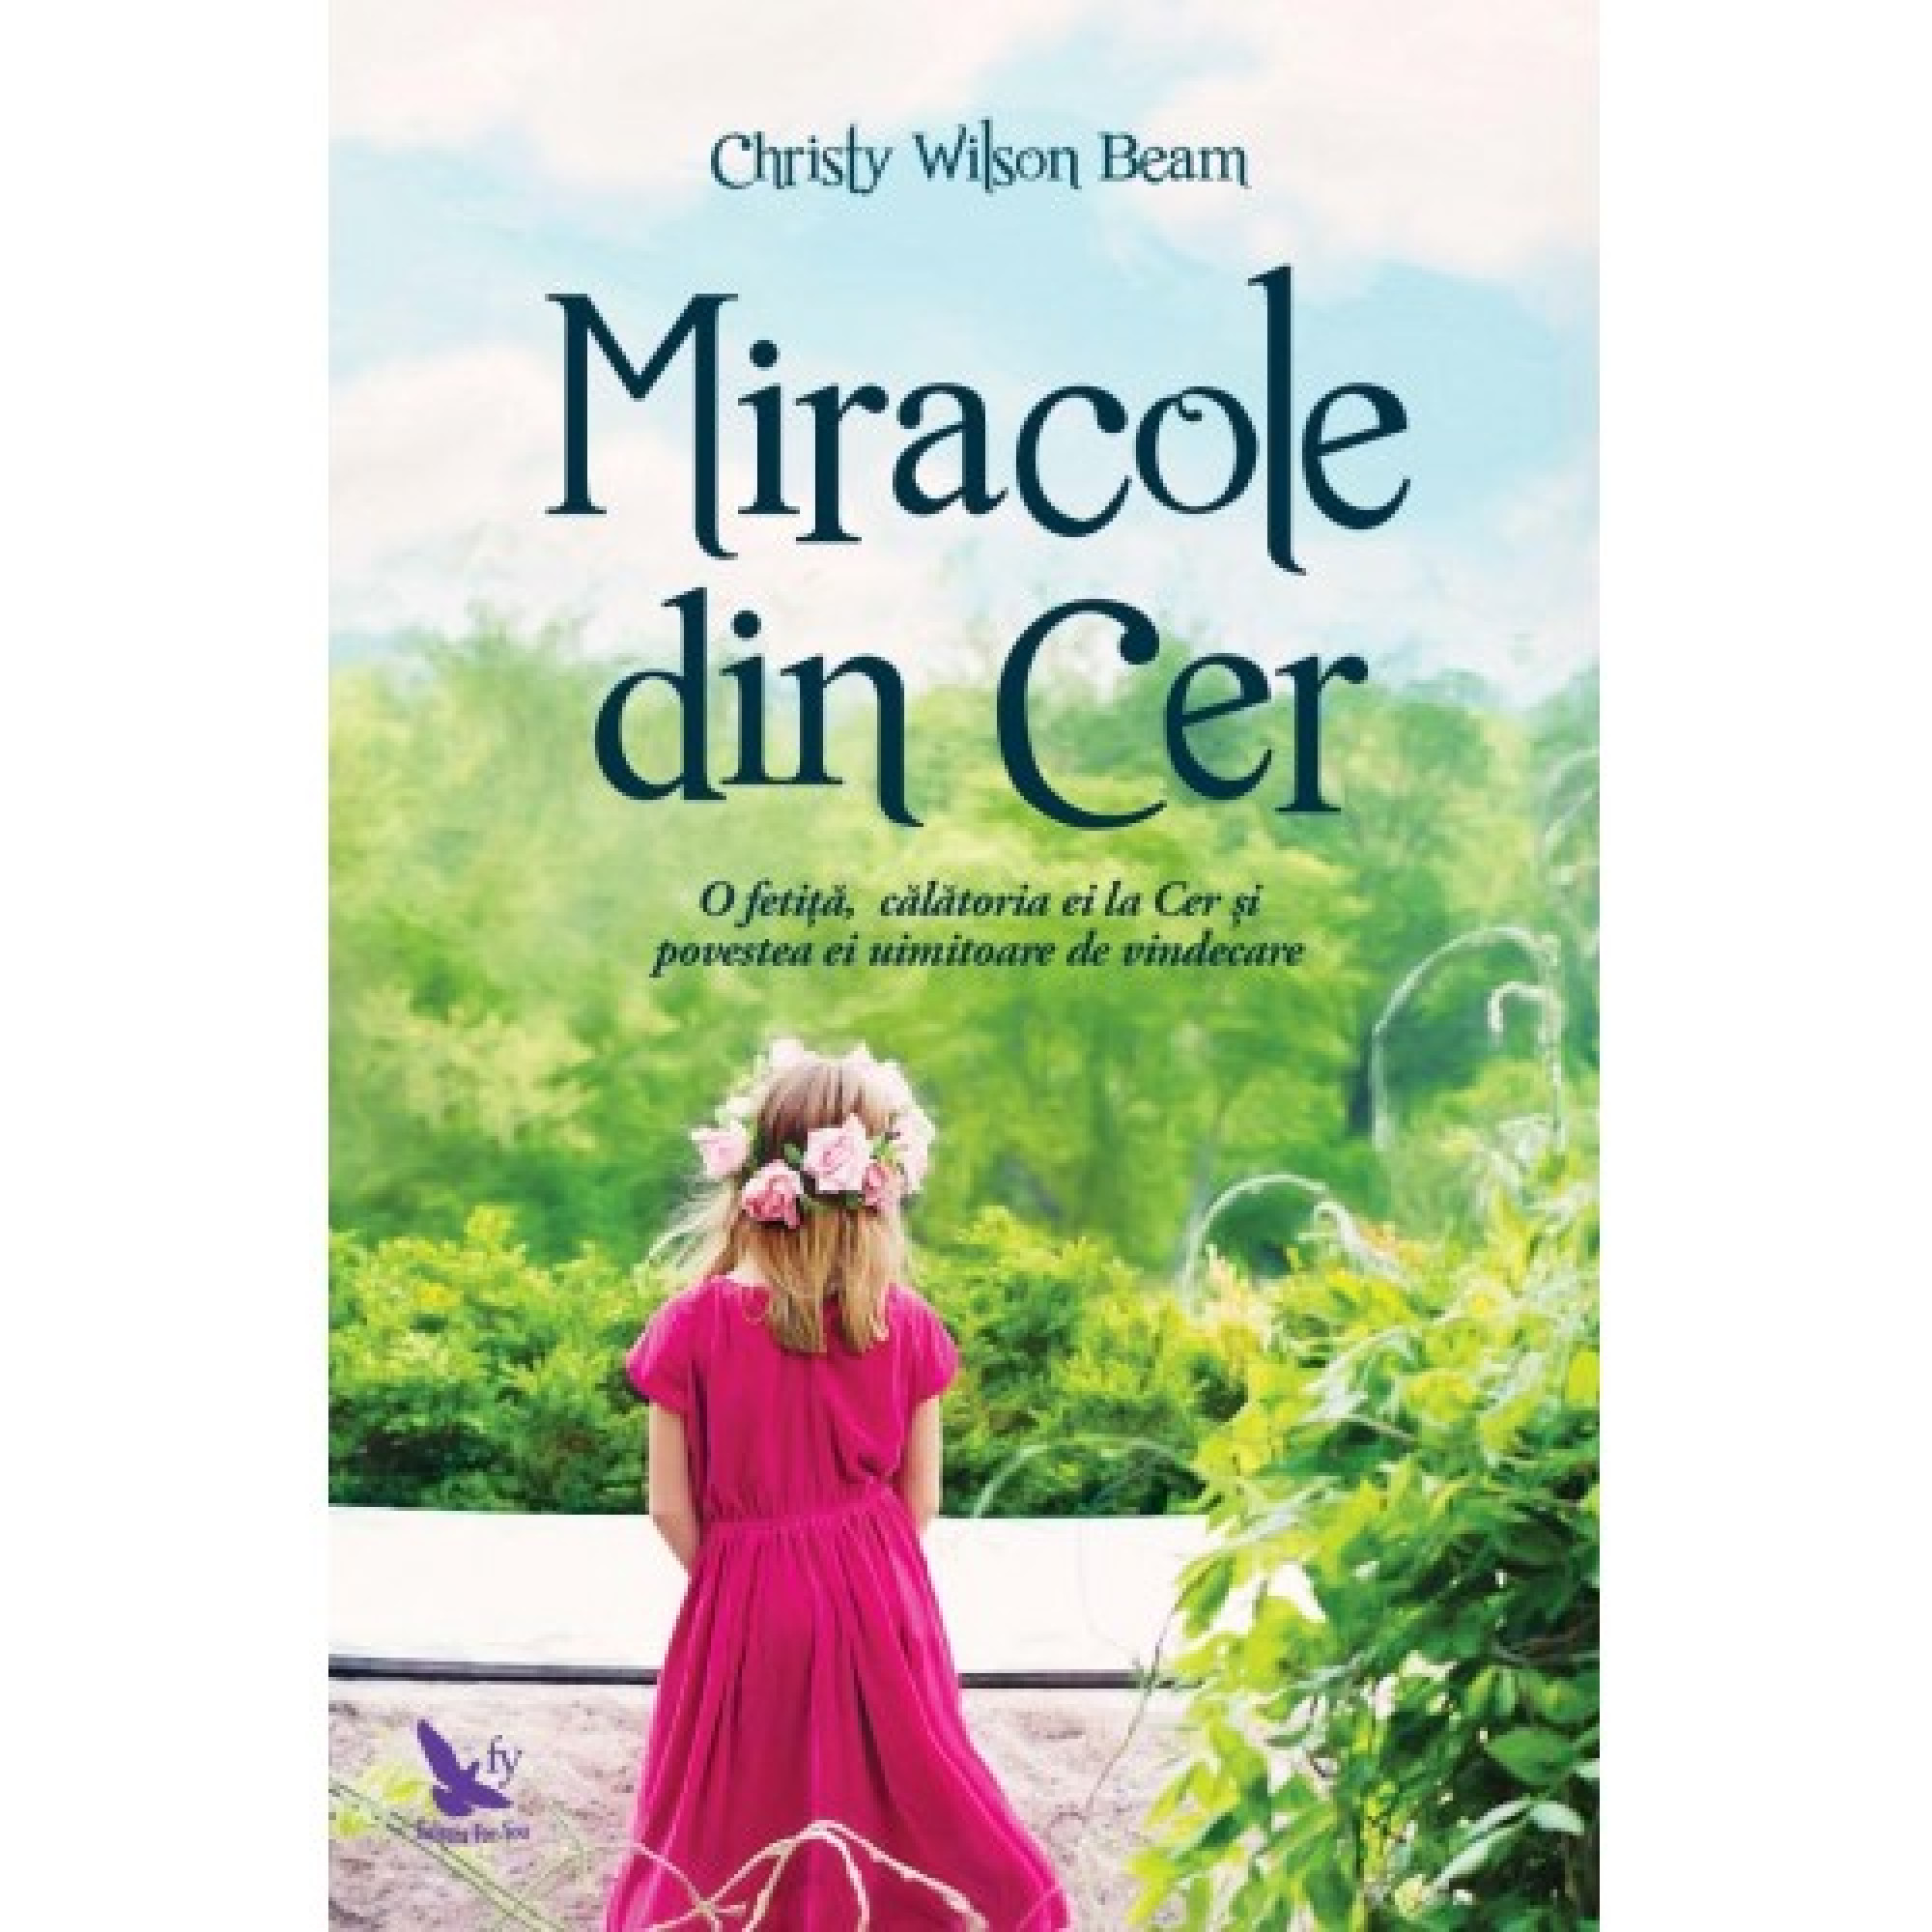 Miracole din cer; Christy Wilson Beam